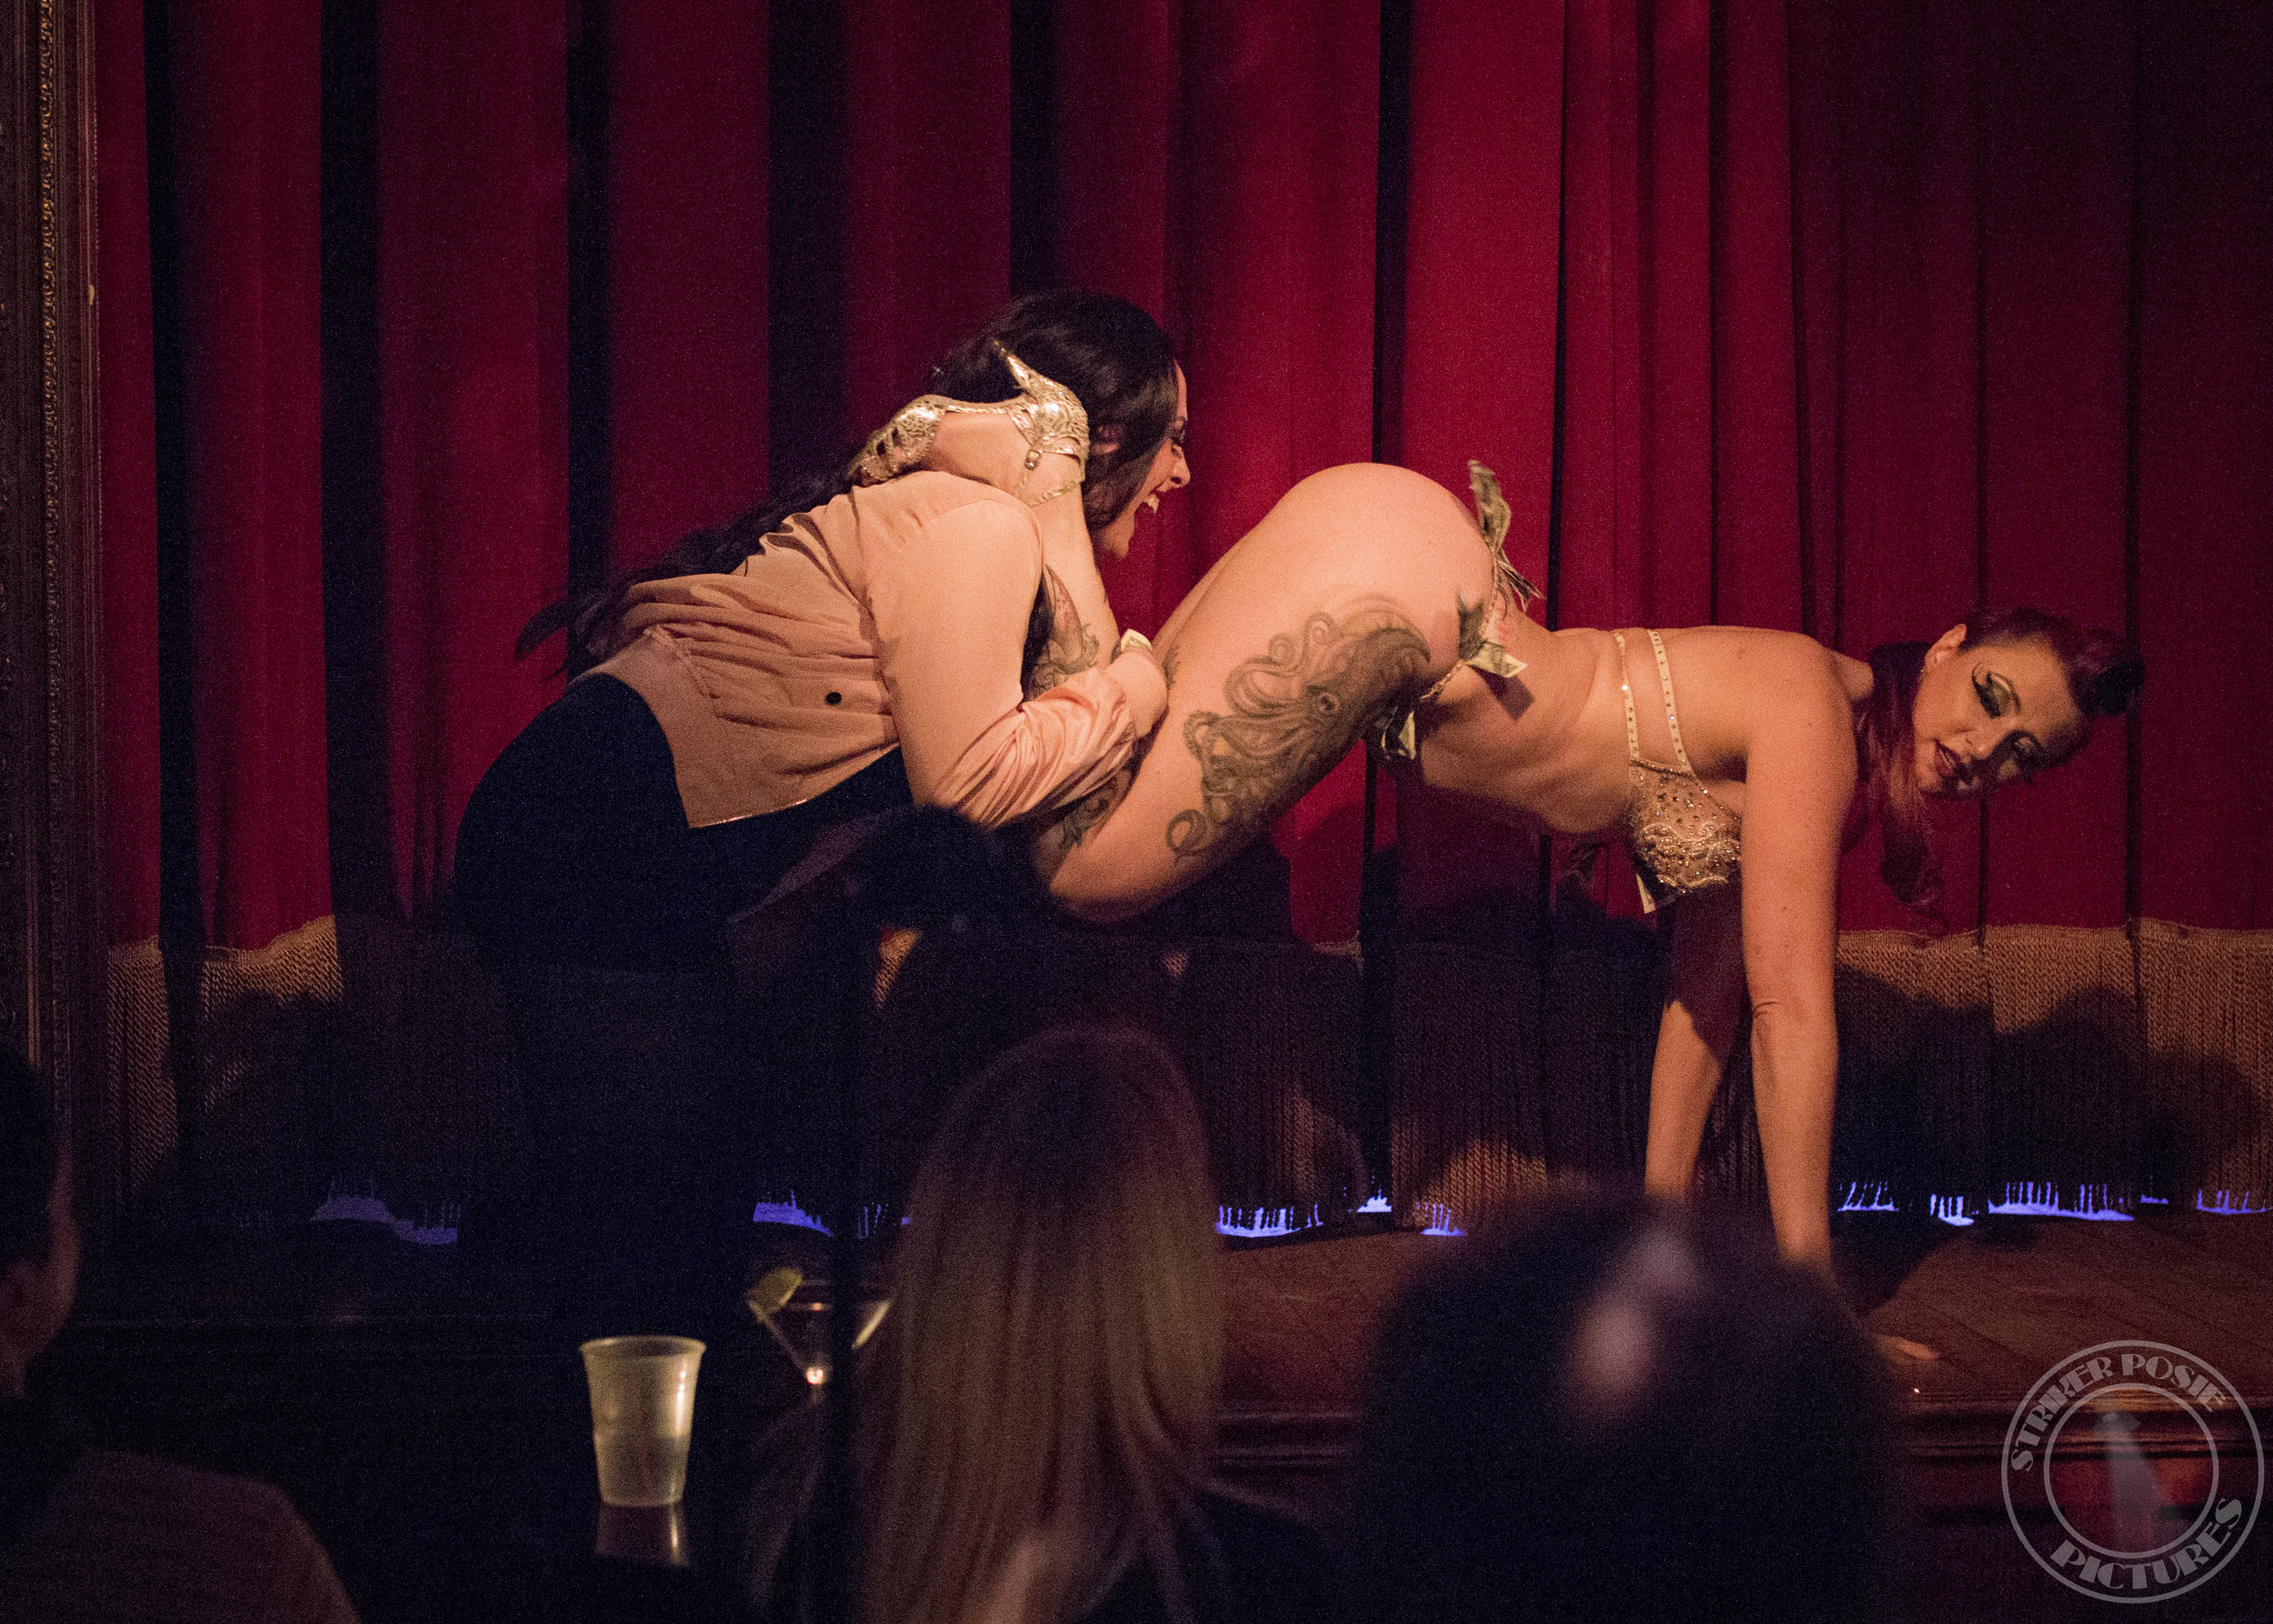 Nina La Voix at The Slipper Room, November 2016